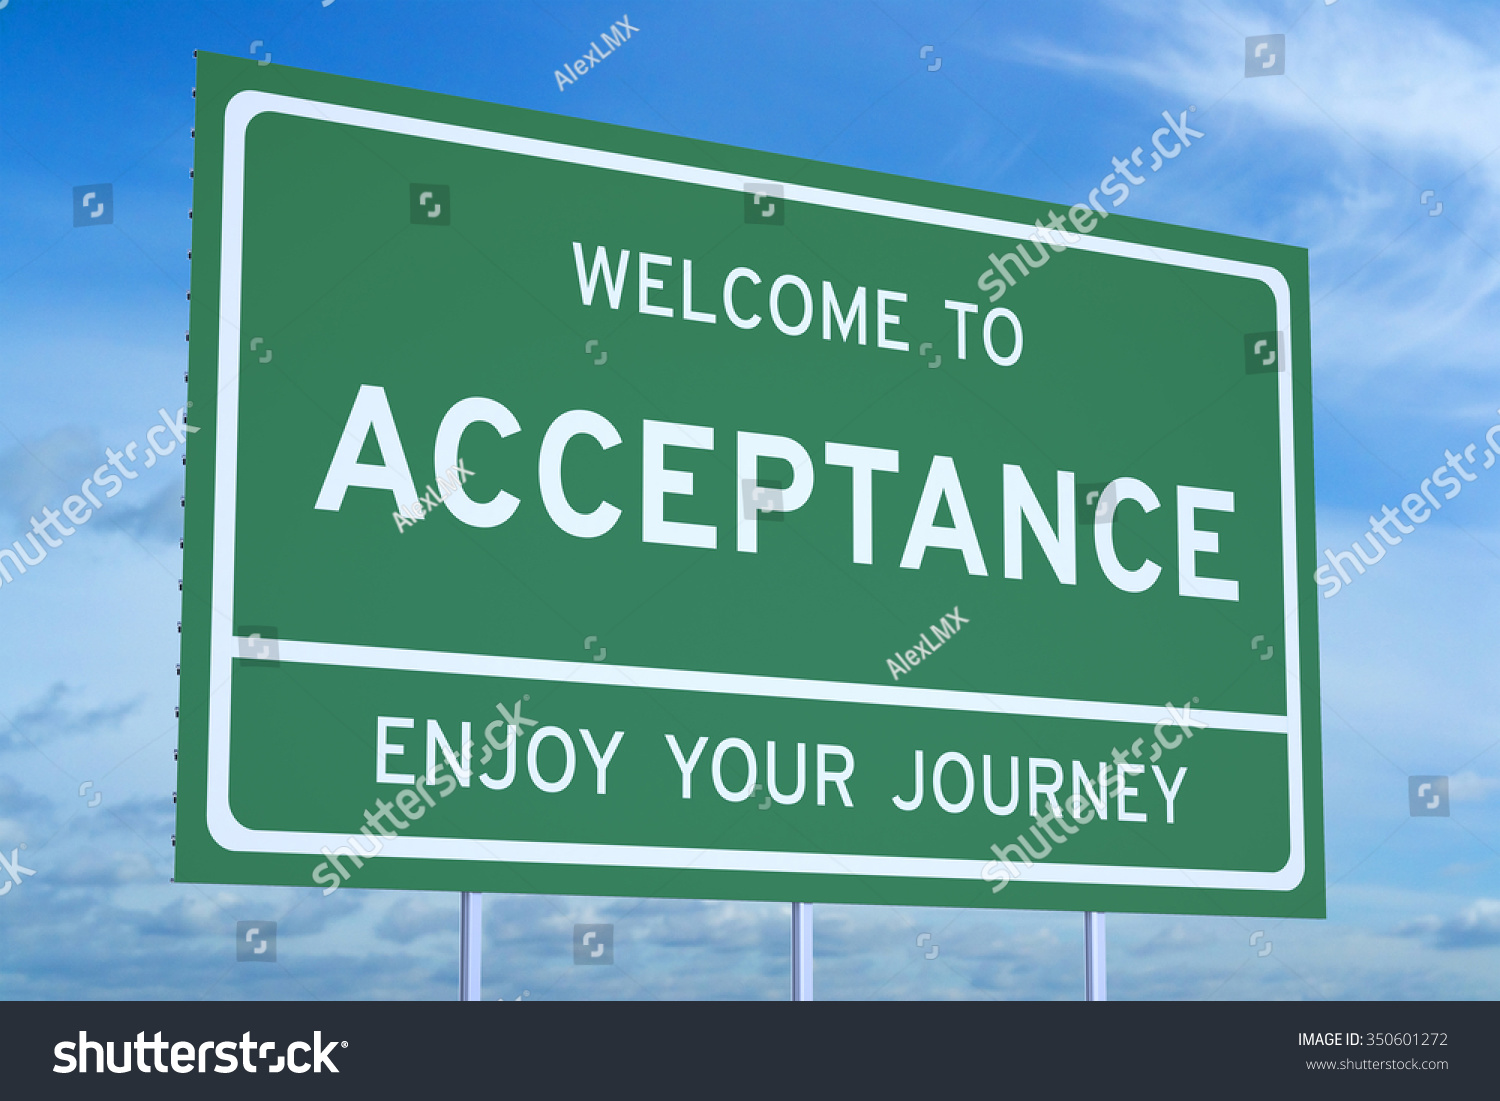 the concept of acceptance This course covers the basic concepts and techniques of acceptance and commitment therapy (act), and we invite you to examine as we go through the material, just how and why it may be effective with clients.